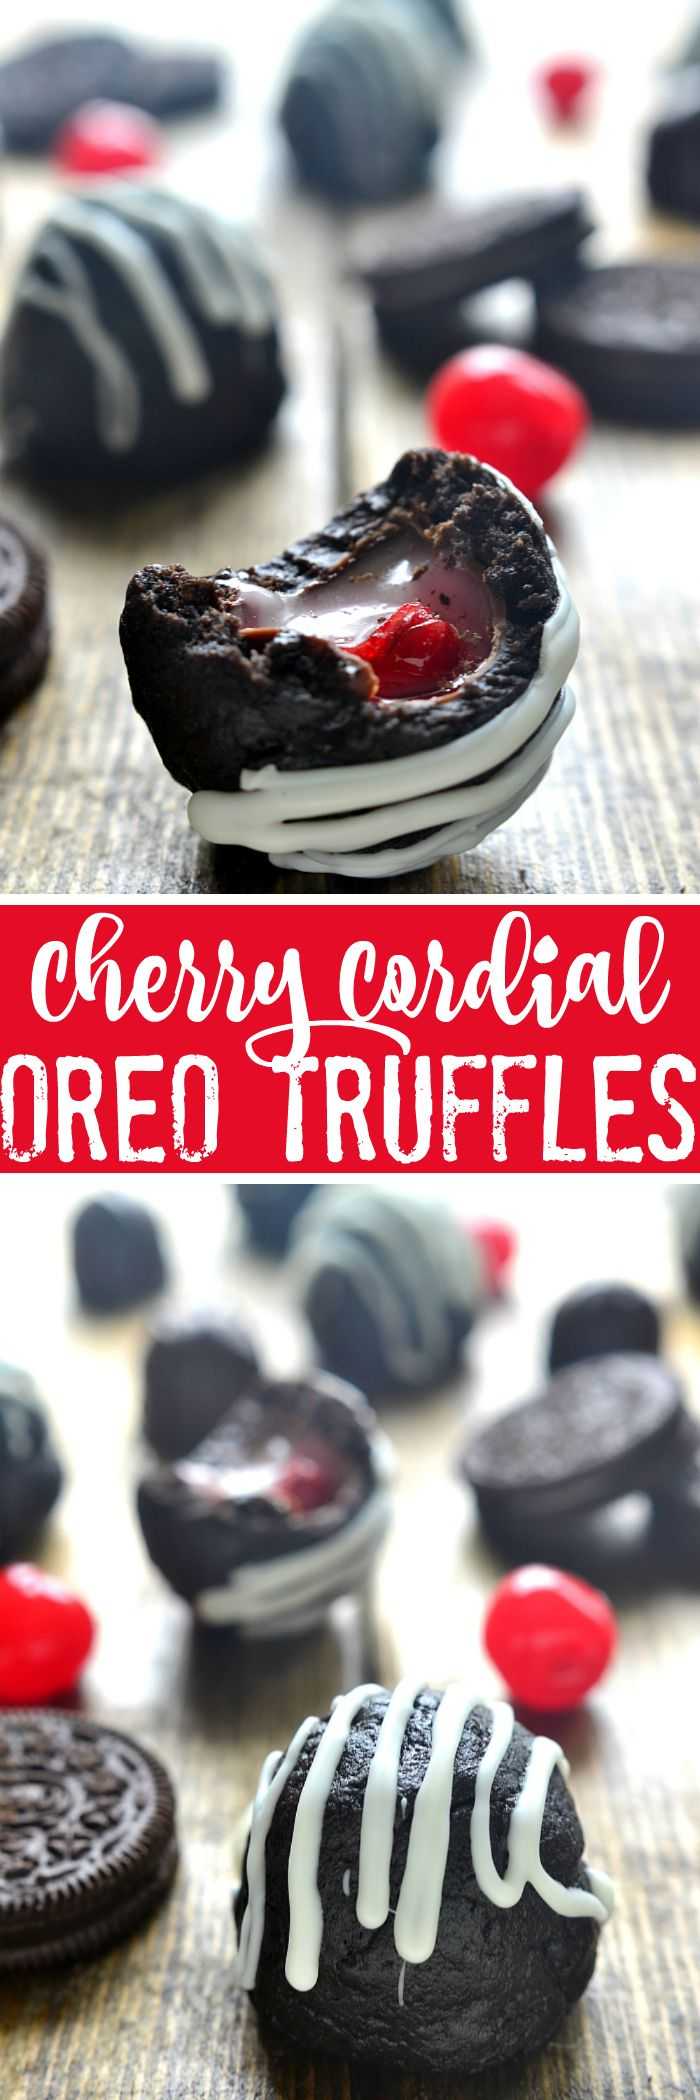 Cherry Cordial Oreo Truffles are the perfect sweet treat...and made with just 4 ingredients!